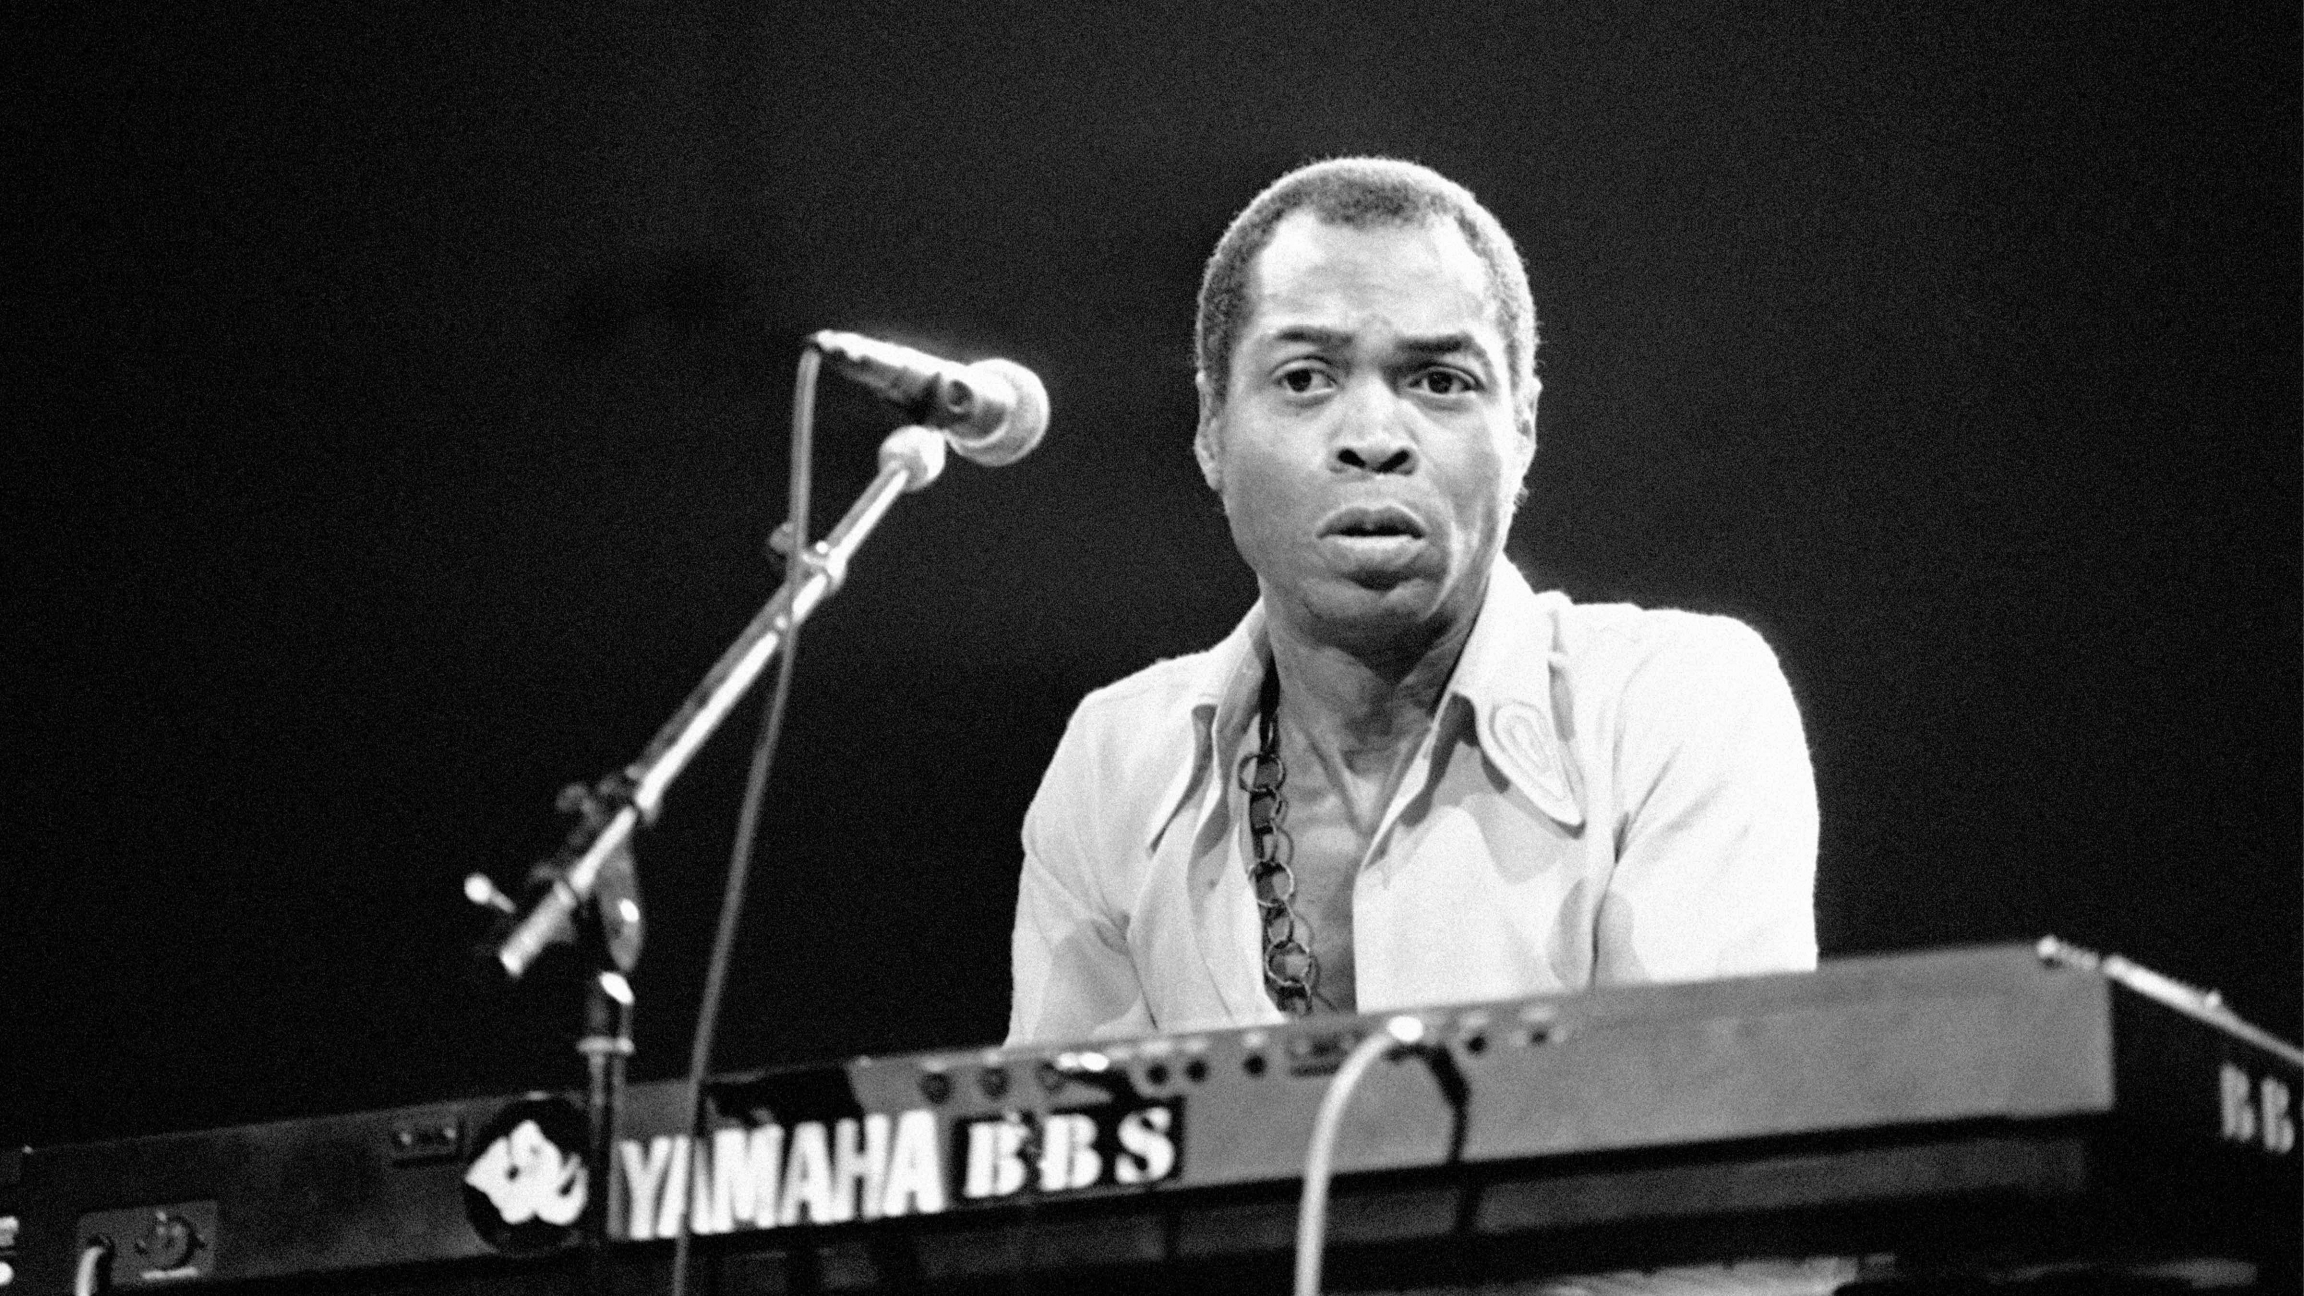 Fela Kuti is shown playing an electric keyboard and standing behind a microphone.